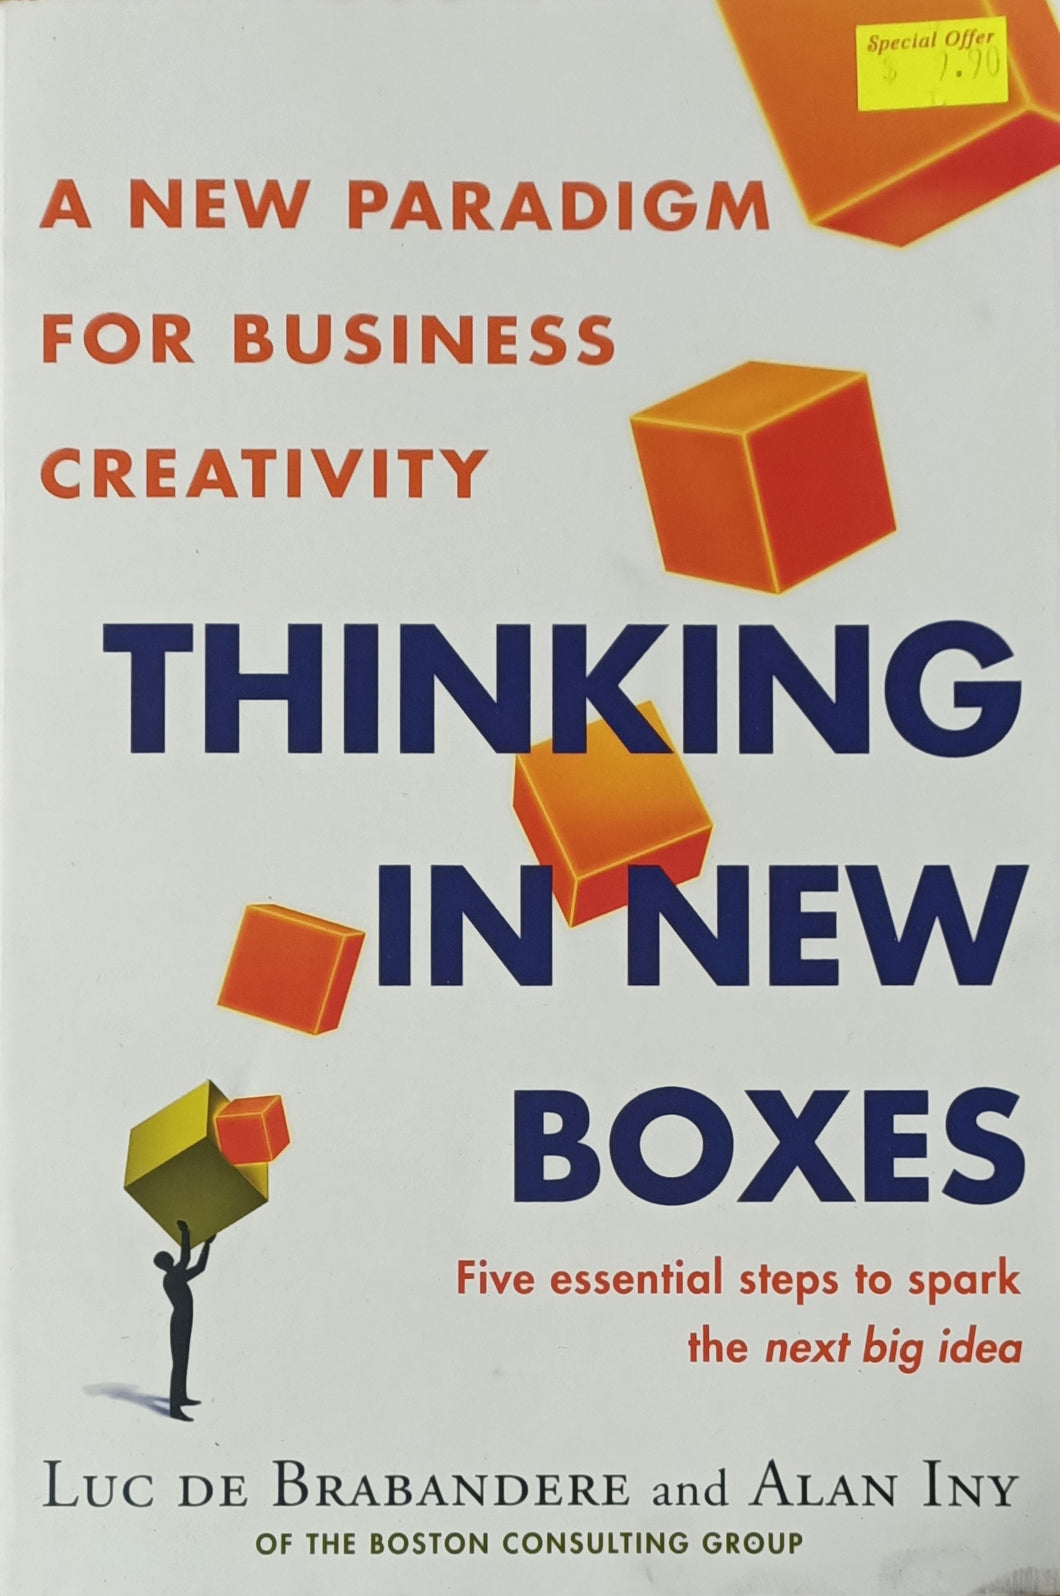 Thinking in New Boxes: A New Paradigm For Business Creativity - Luc De Brabandere & Alan Iny